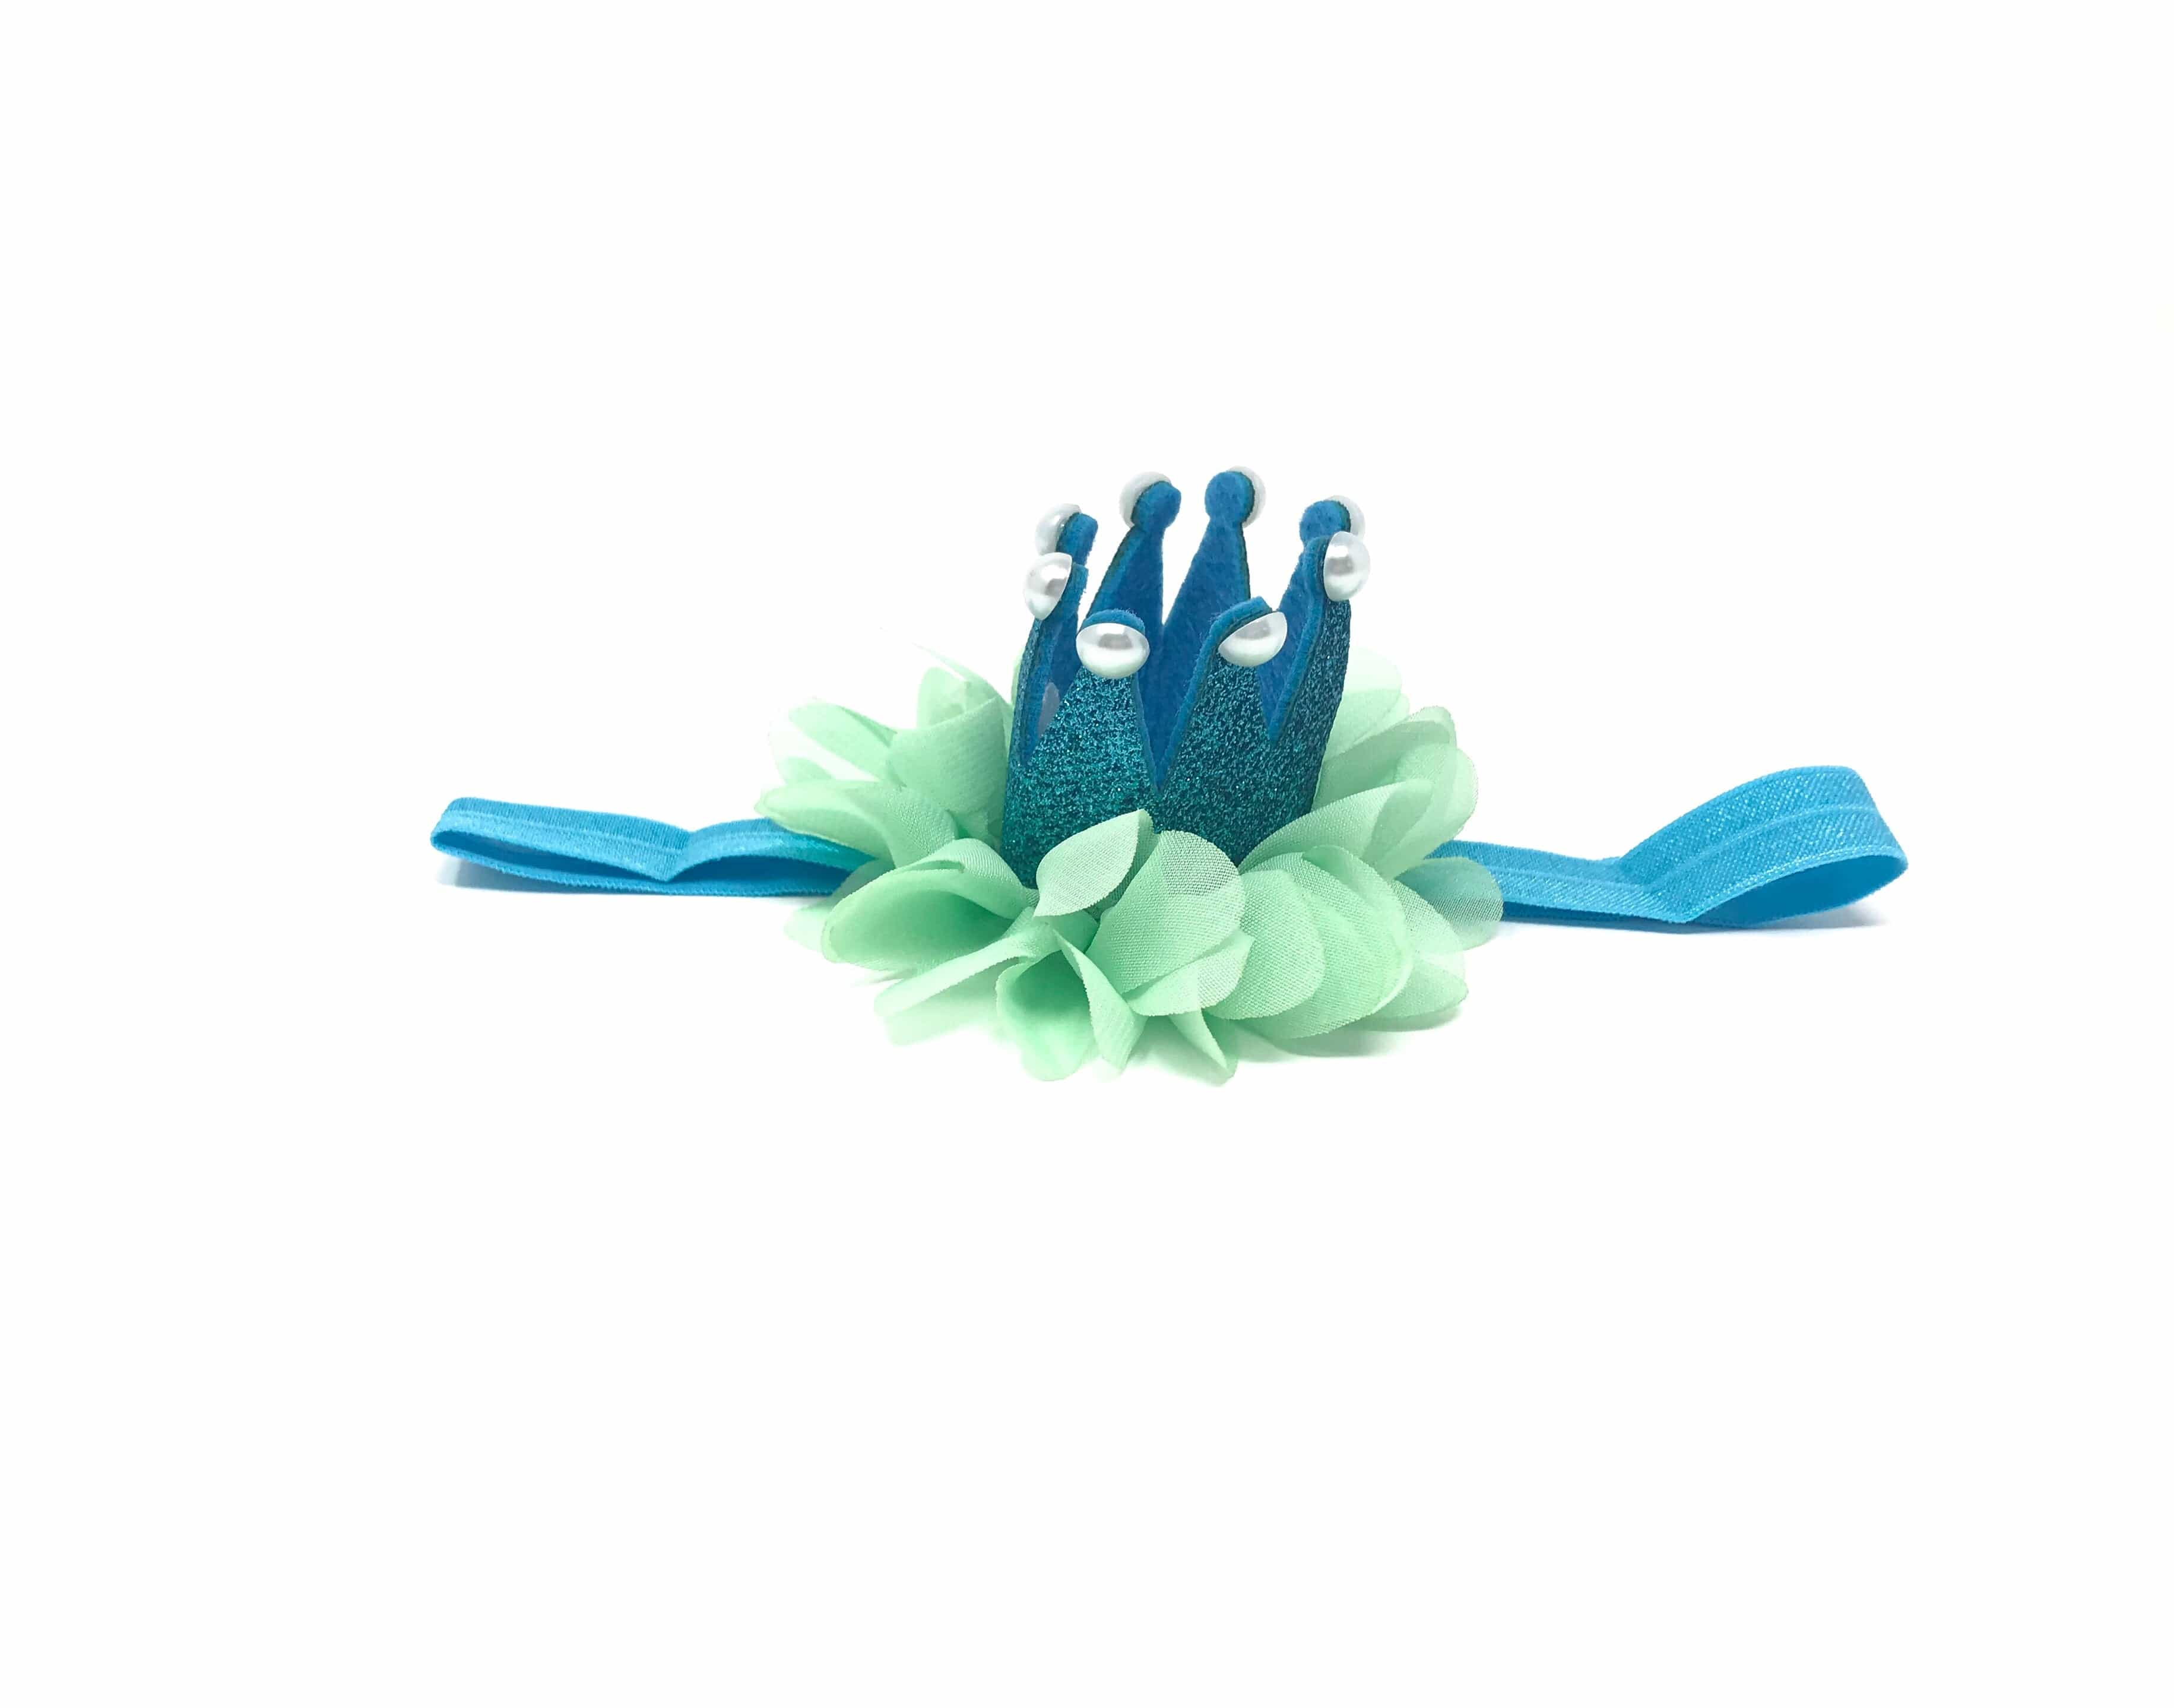 blue prince frog, blue green pearl crown headband tutu joli with tutu skirt for babies